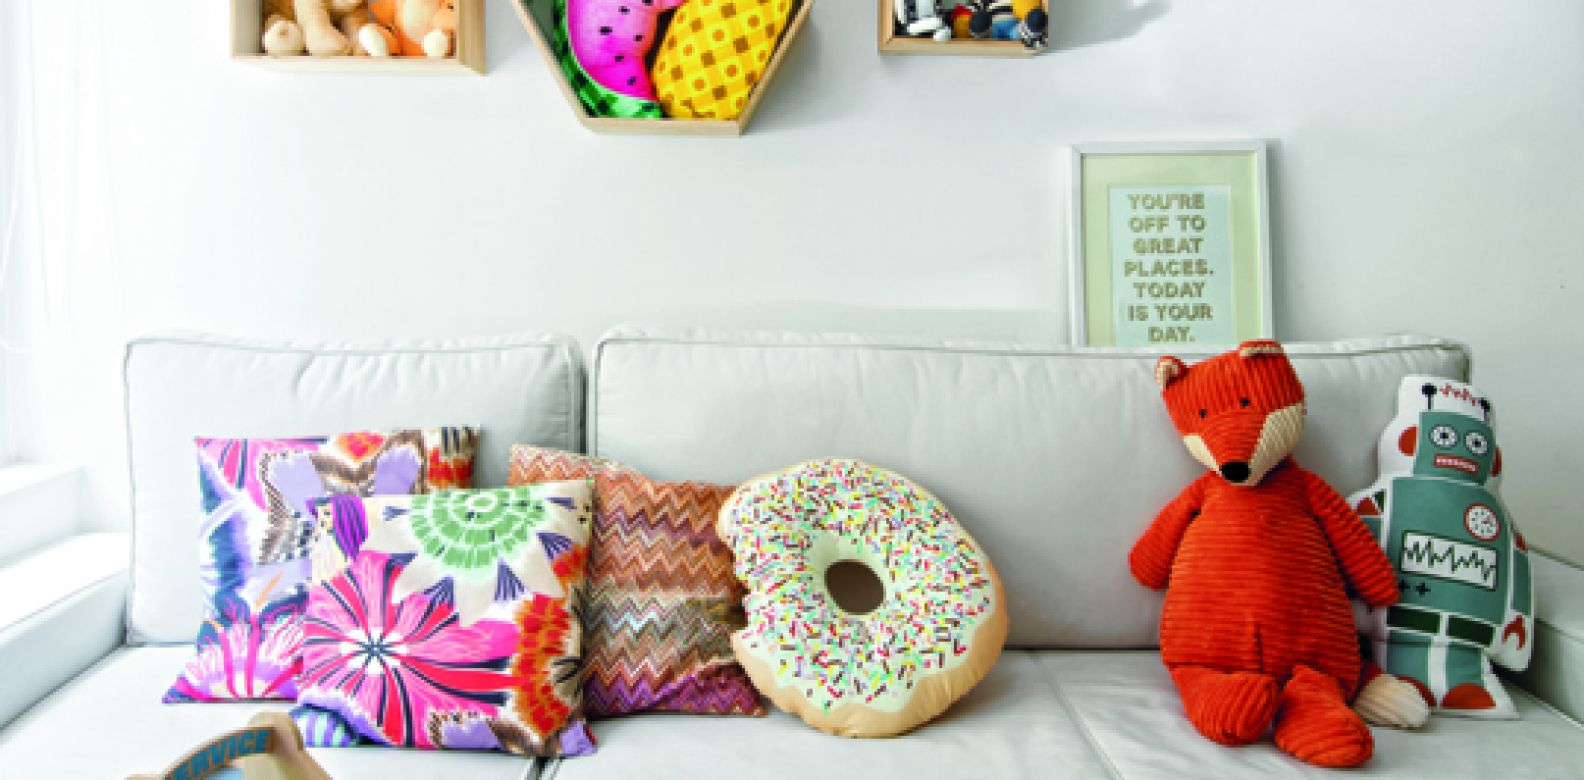 The room belonging to Shana's son Axel is a veritable playground of the imagination, with fun fabrics by Sack Me! and even a blackboard wall for drawing on.